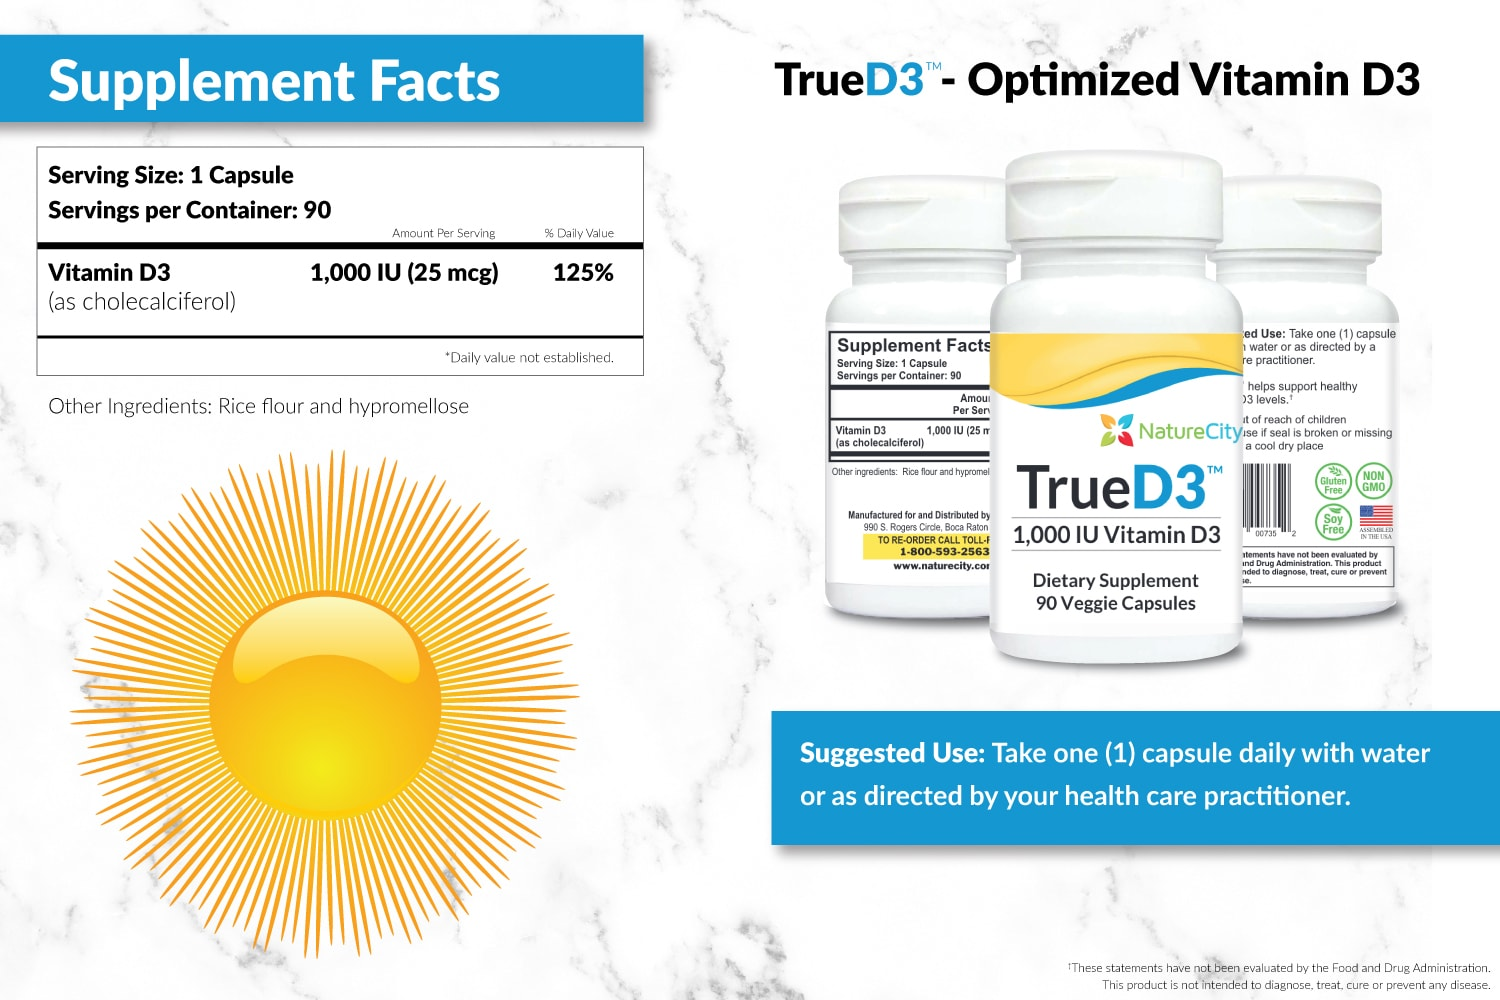 TrueD3 Supplement Facts